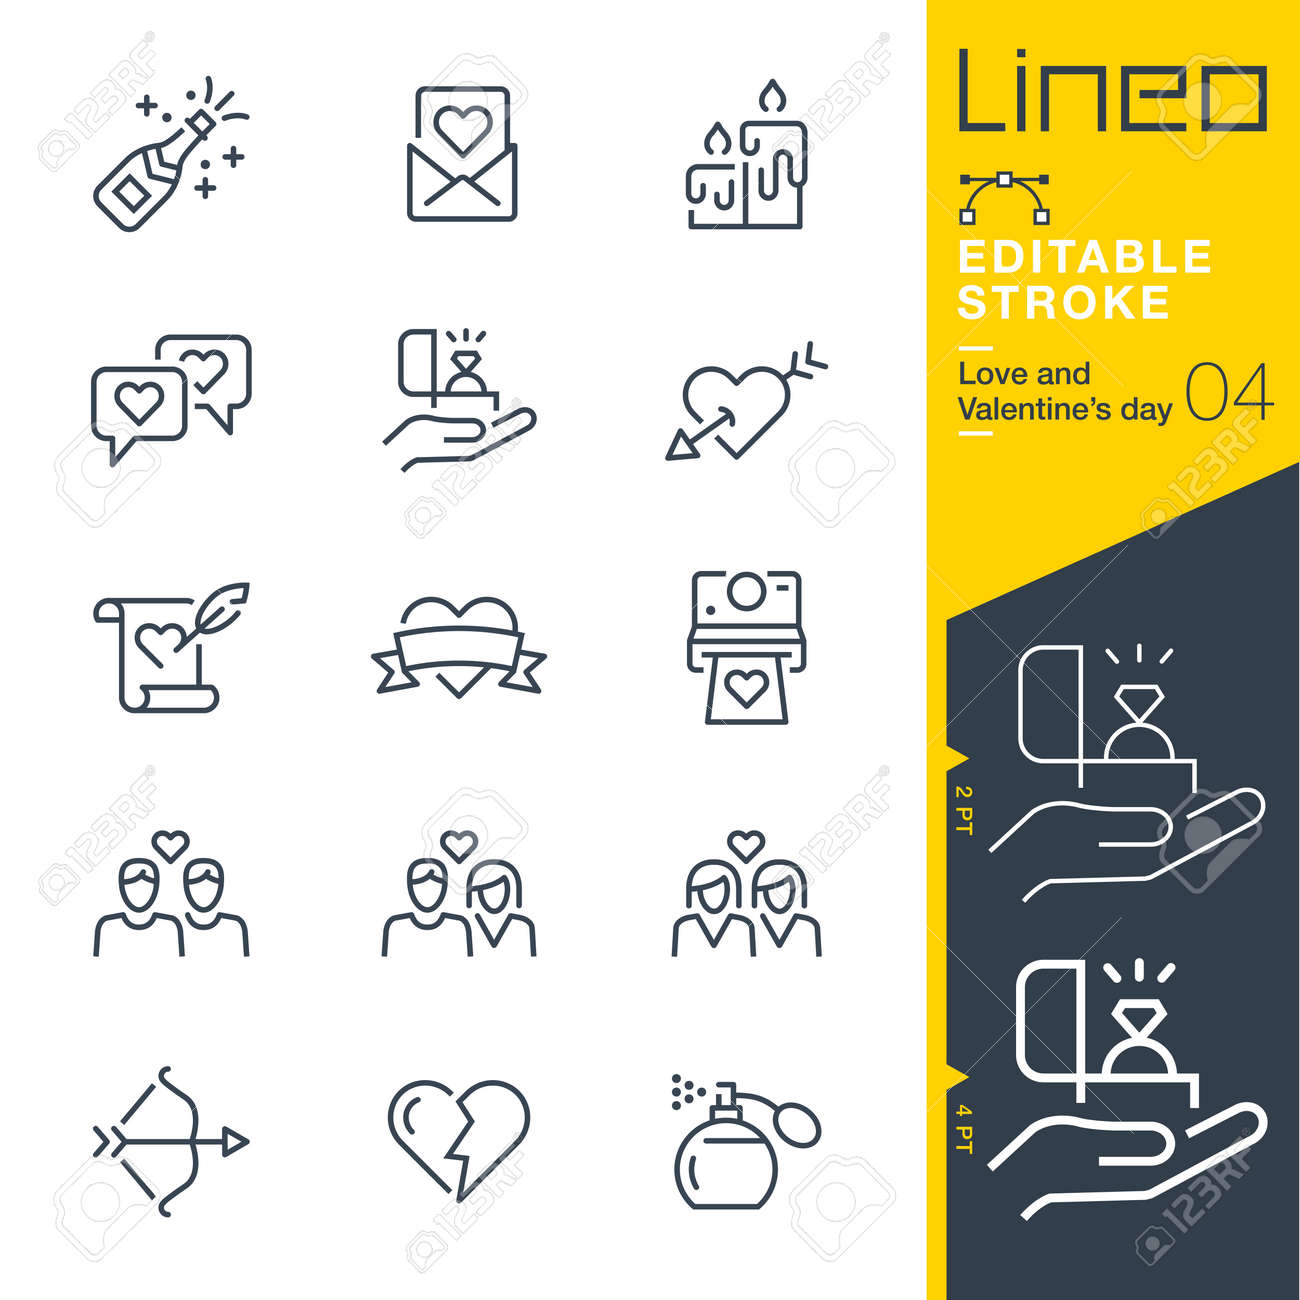 Lineo Editable Stroke - Love and Valentine? ? ? s day line icon Icons - Adjust stroke weight - Change to any color - 84275916